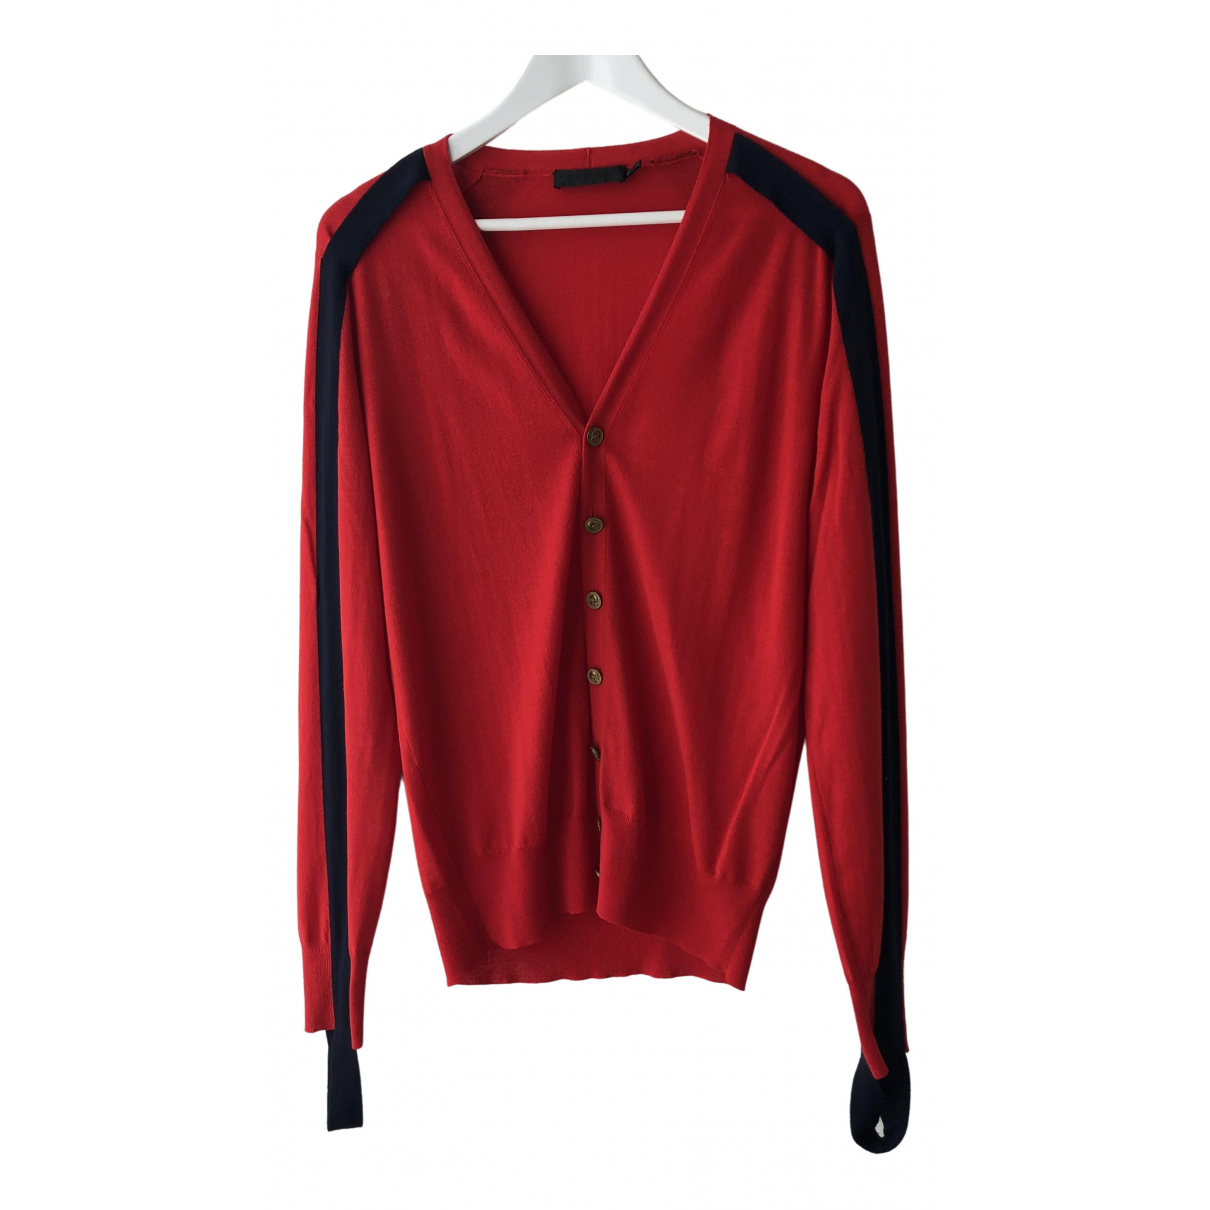 Alexander Mcqueen \N Red Wool Knitwear & Sweatshirts for Men S International